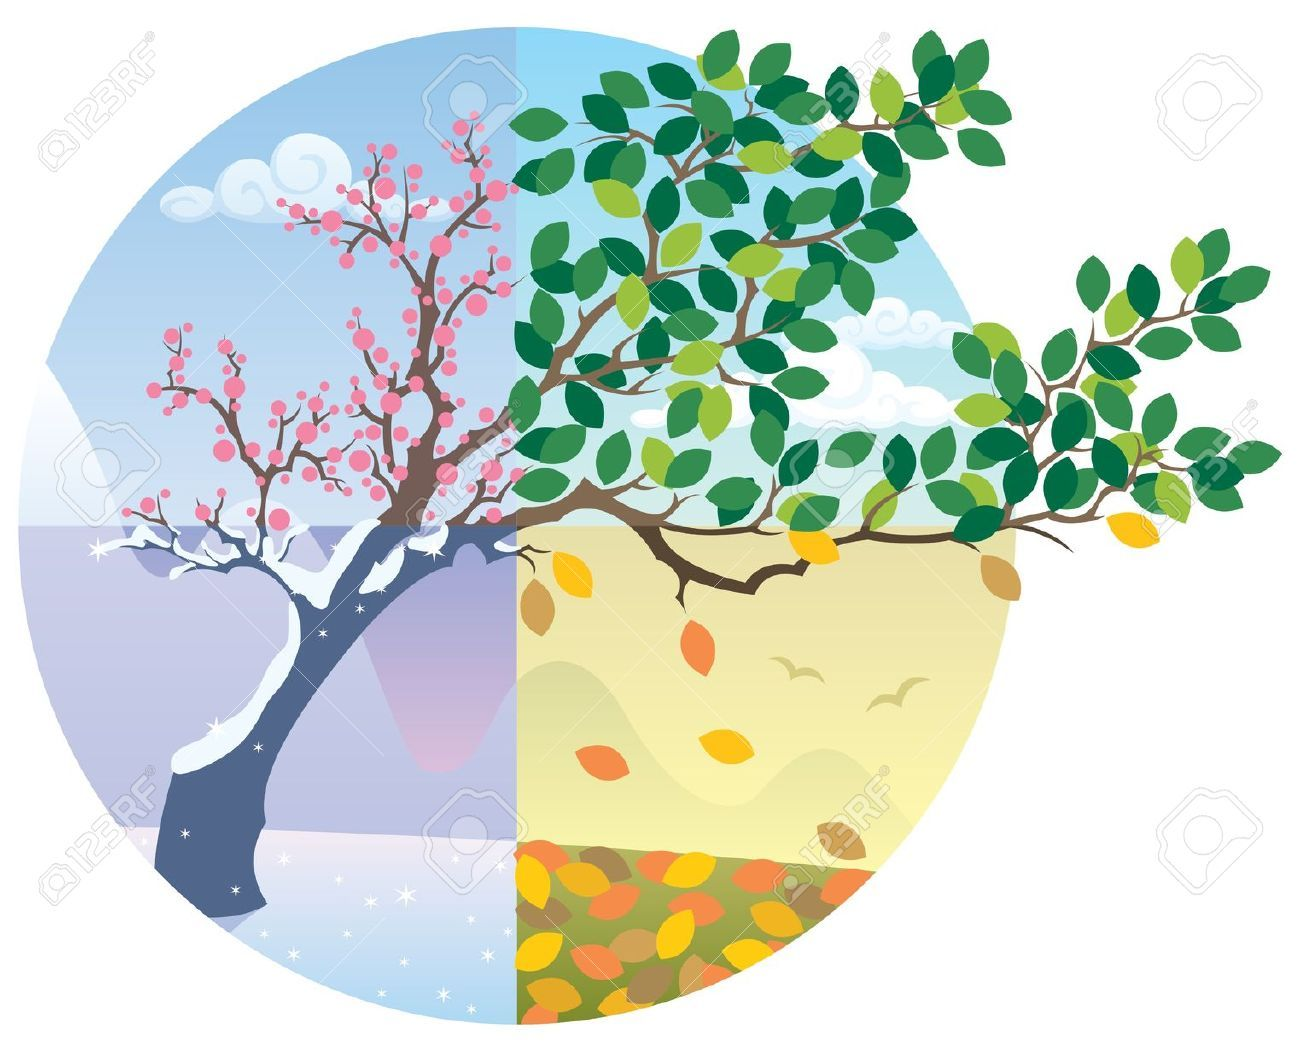 Cartoon Illustration Representing The Cycle Of The Four Seasons No Transparency Used